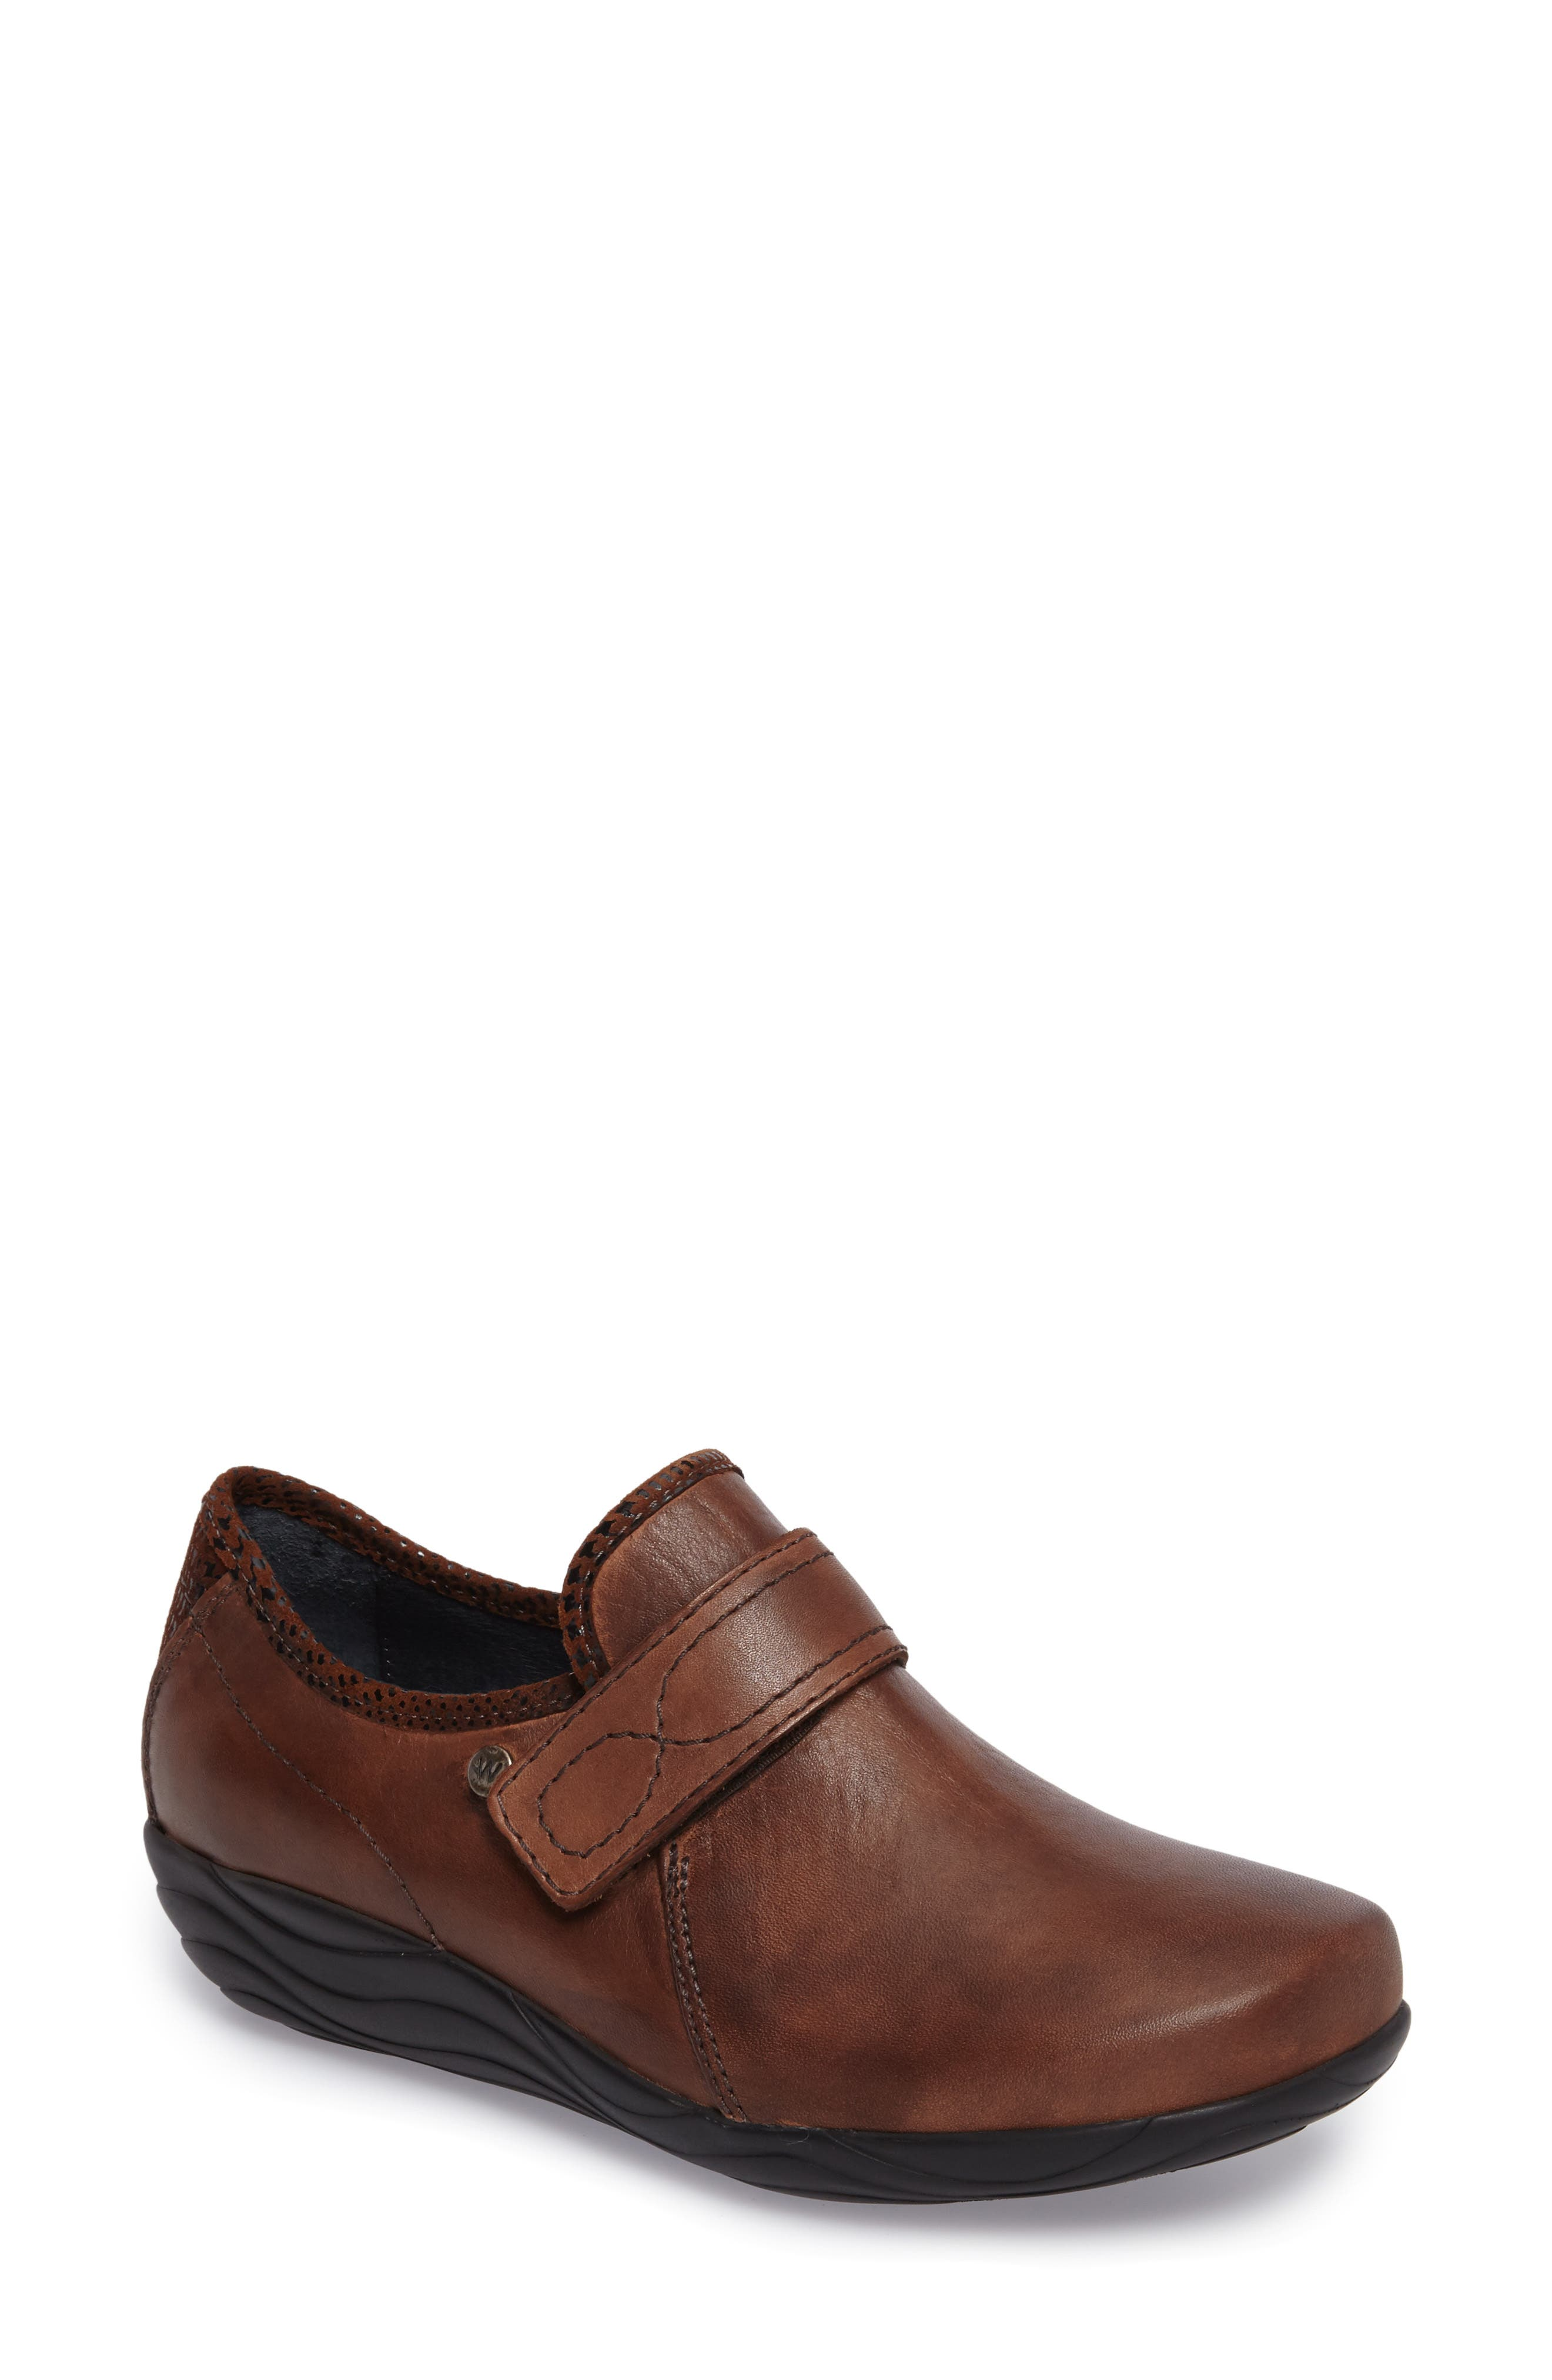 Desna Slip-On Sneaker,                             Main thumbnail 1, color,                             Cognac Leather